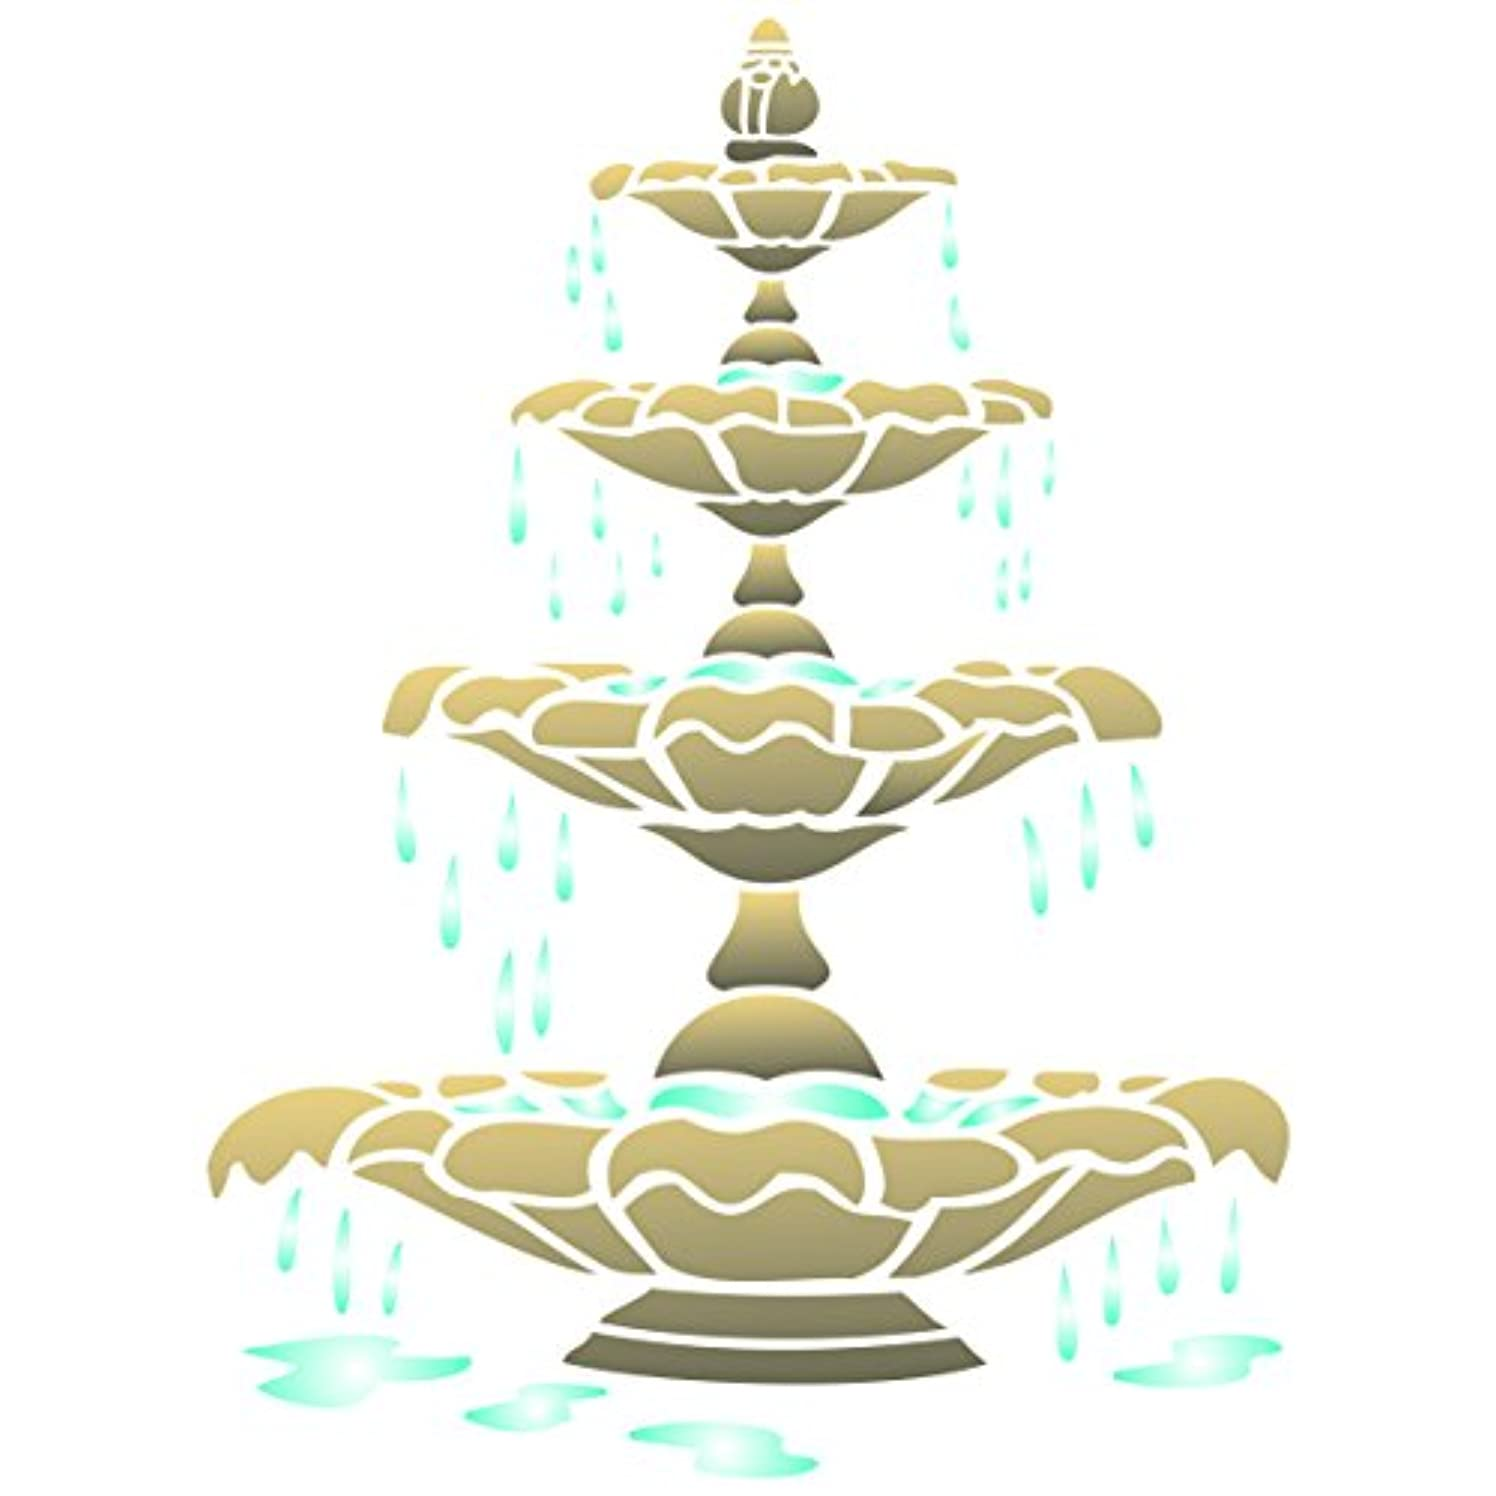 Fountain Stencil - 6.5 x 8.5 inch (S) - Reusable Architectural Outdoor Indoor Wall Stencils for Painting - Use on Paper Projects Walls Floors Fabric Furniture Glass Wood etc.